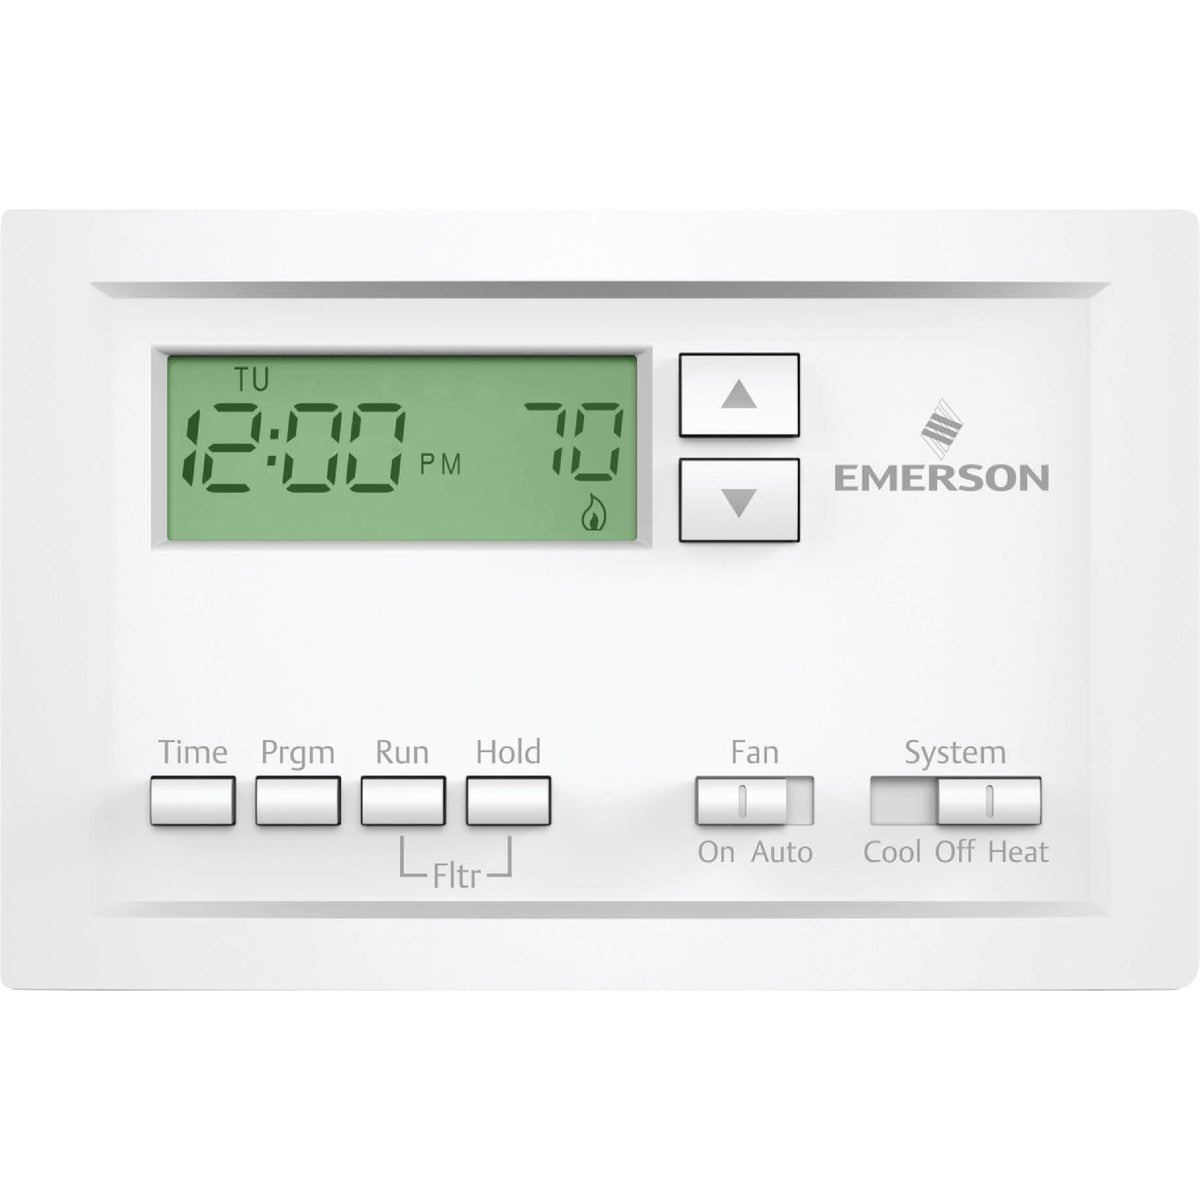 5-1-1 PROGRAM THERMOSTAT - P200 by White-Rodgers/Emerson